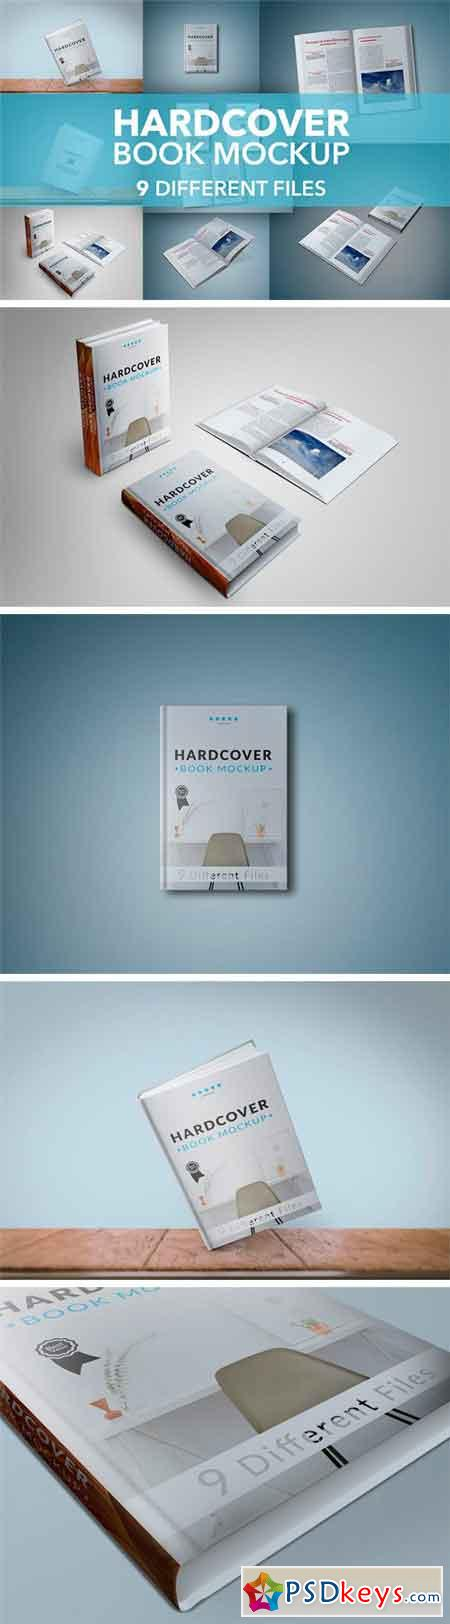 9 Hardcover Book Mockup Bundle 1361463